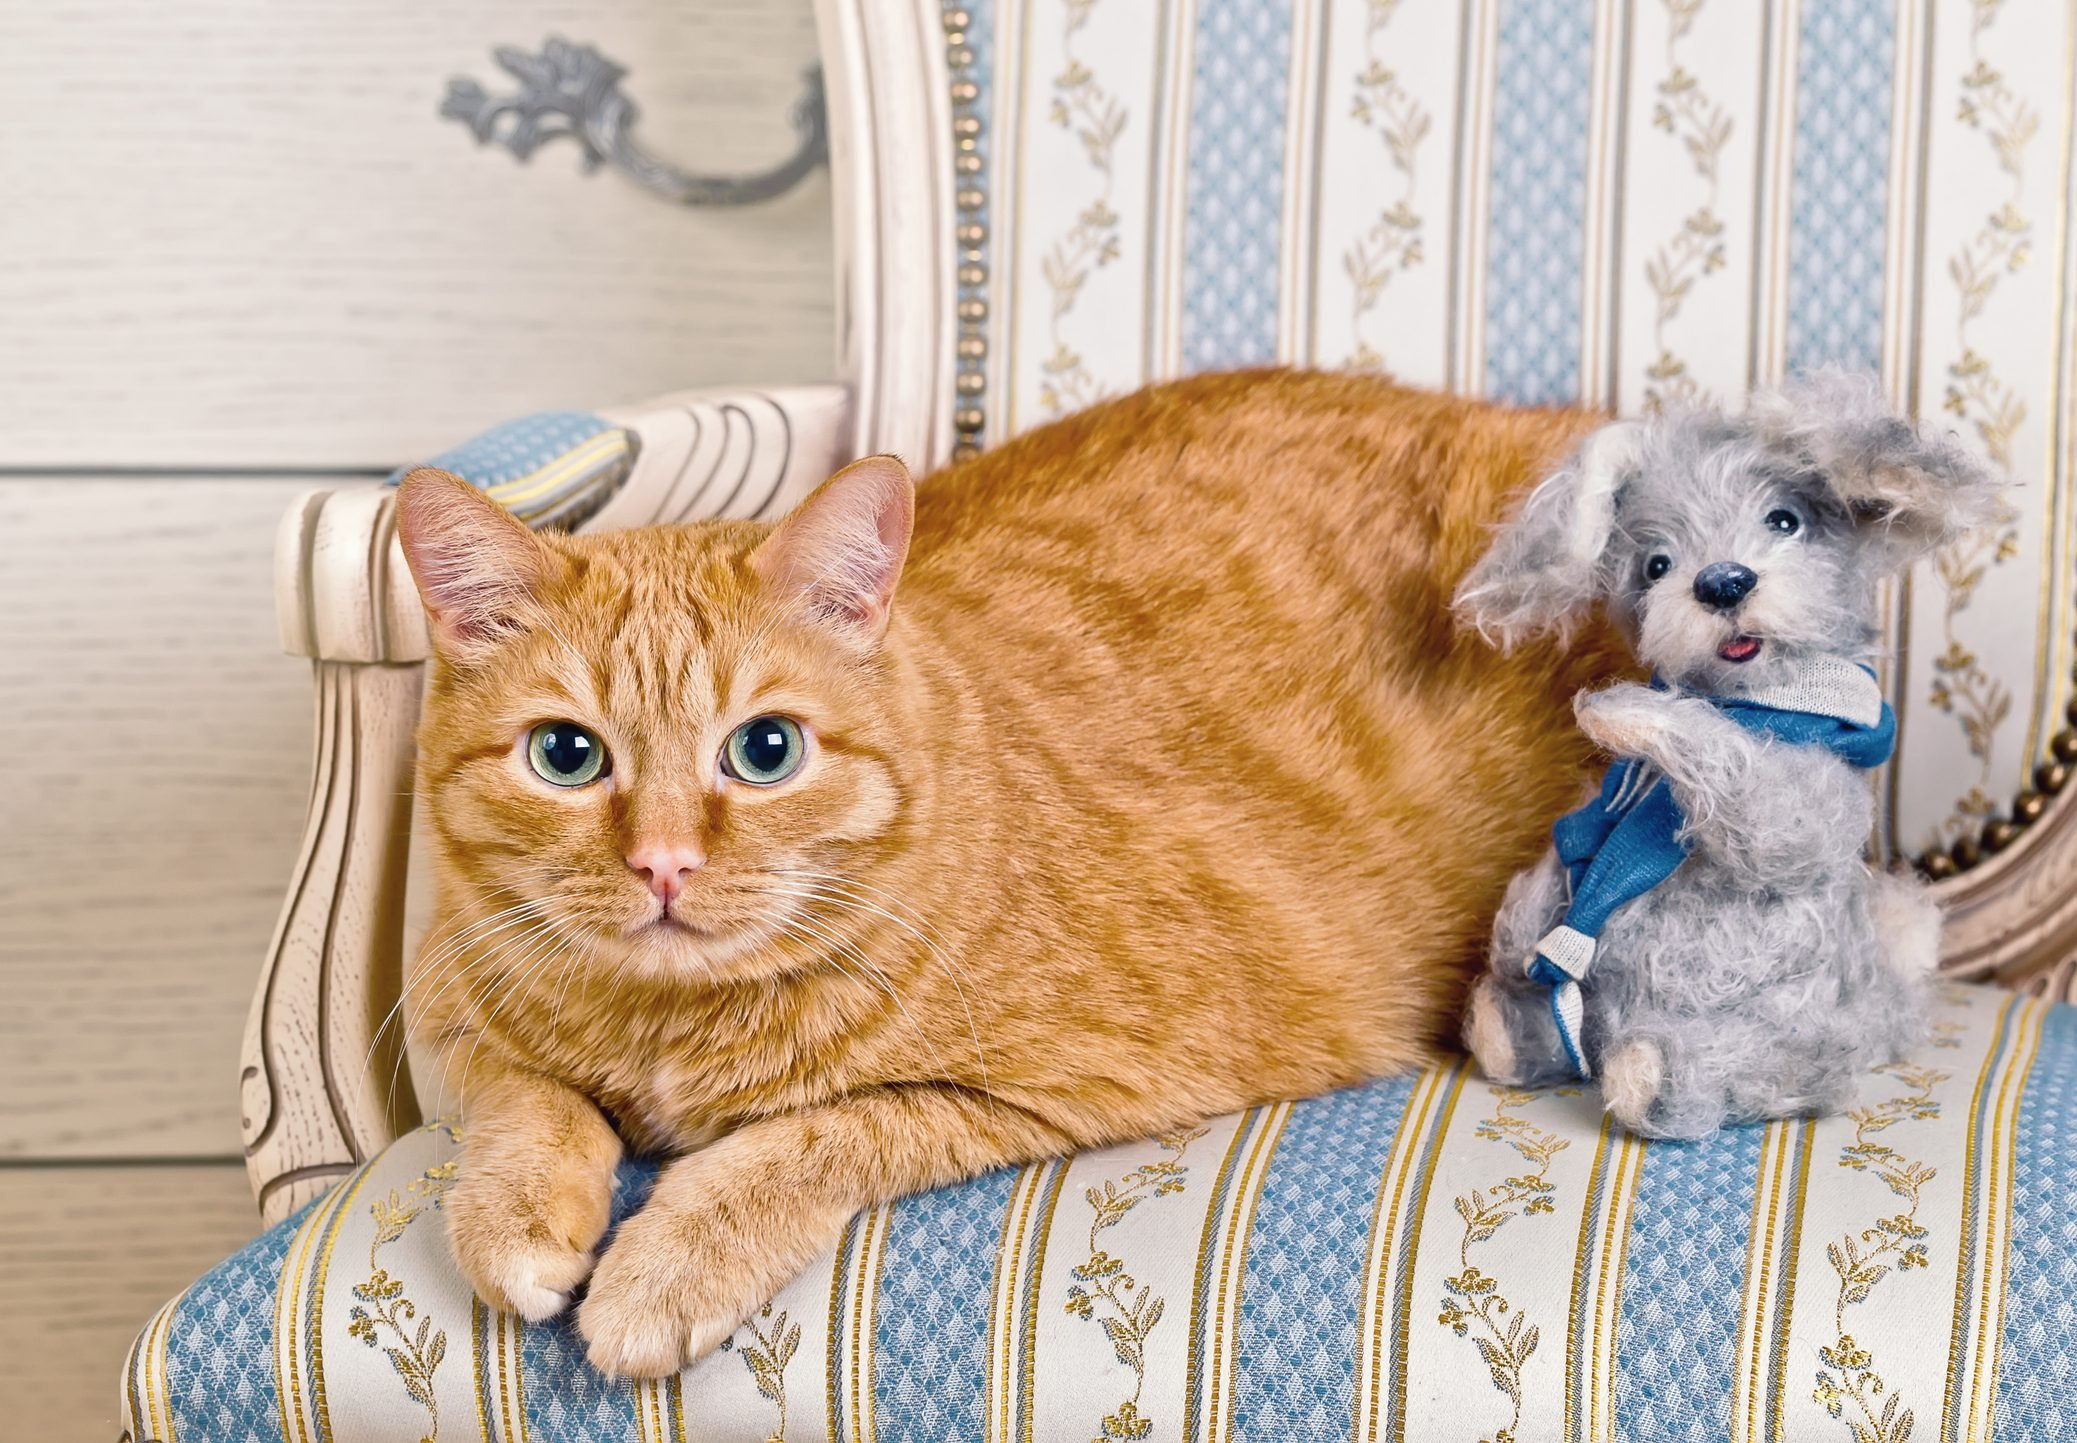 Ginger Cat with Toy Teddy Dog sitting on a striped chair